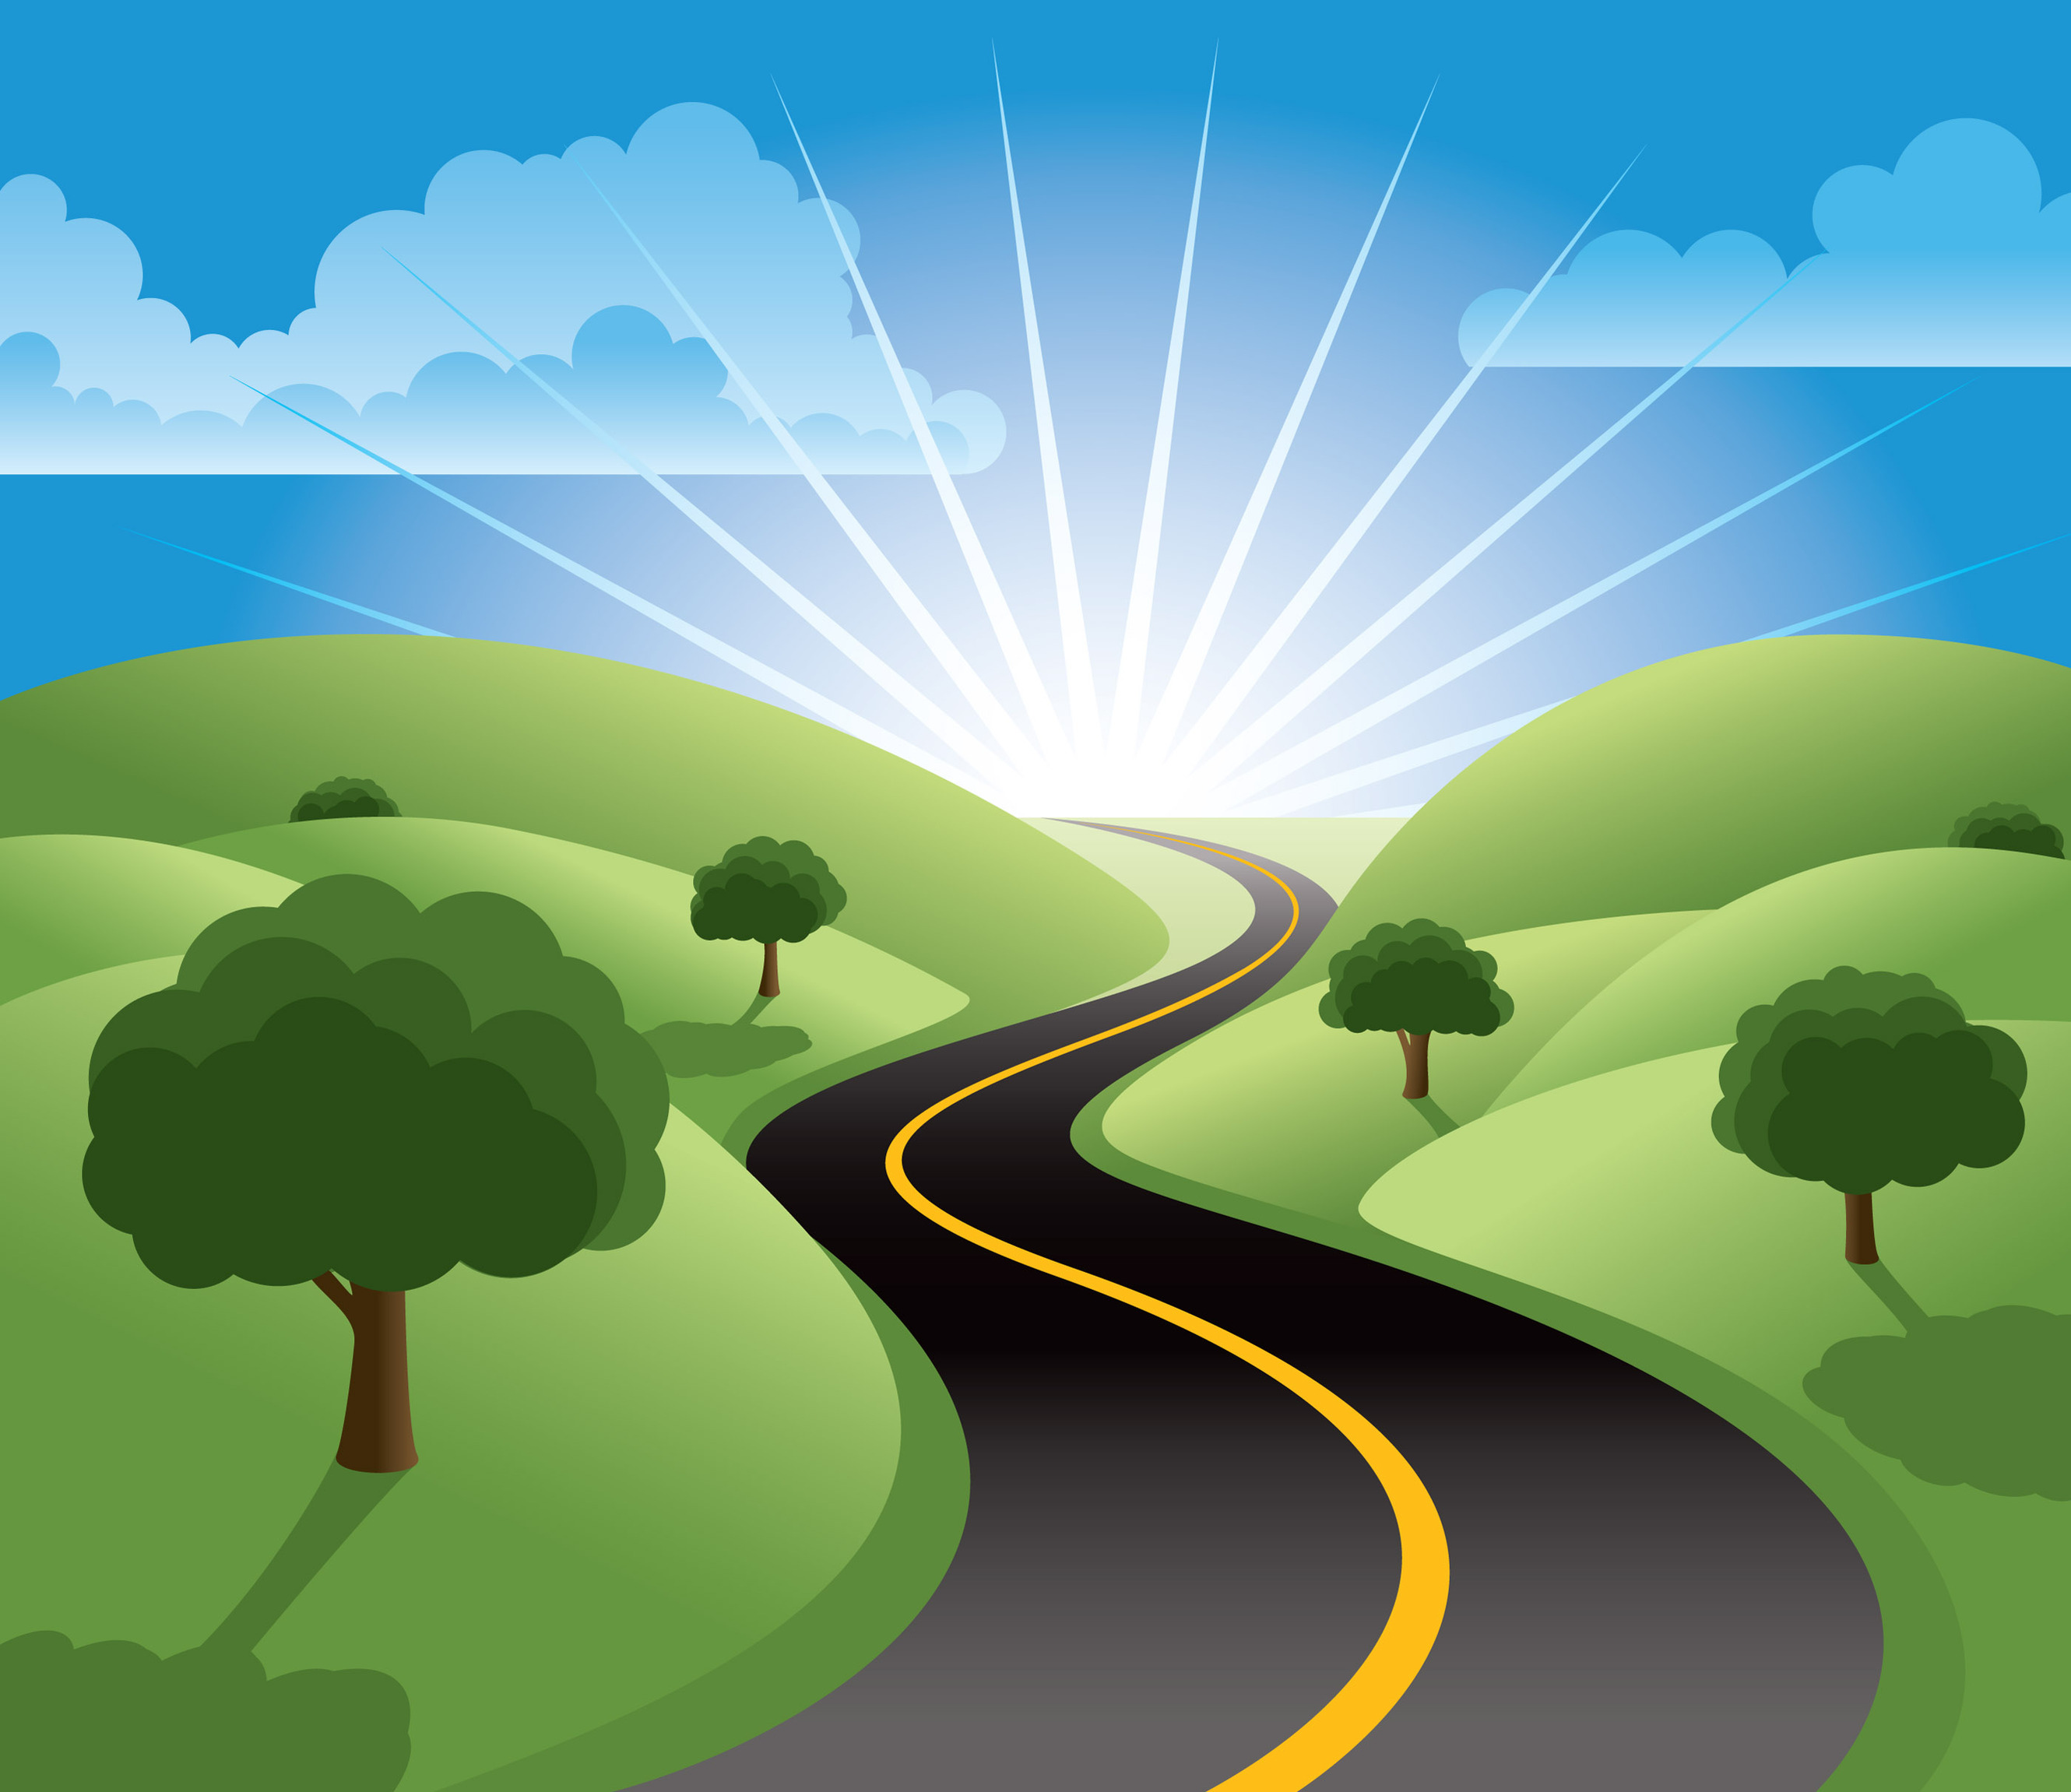 road boackgrounds clipart - Clipground